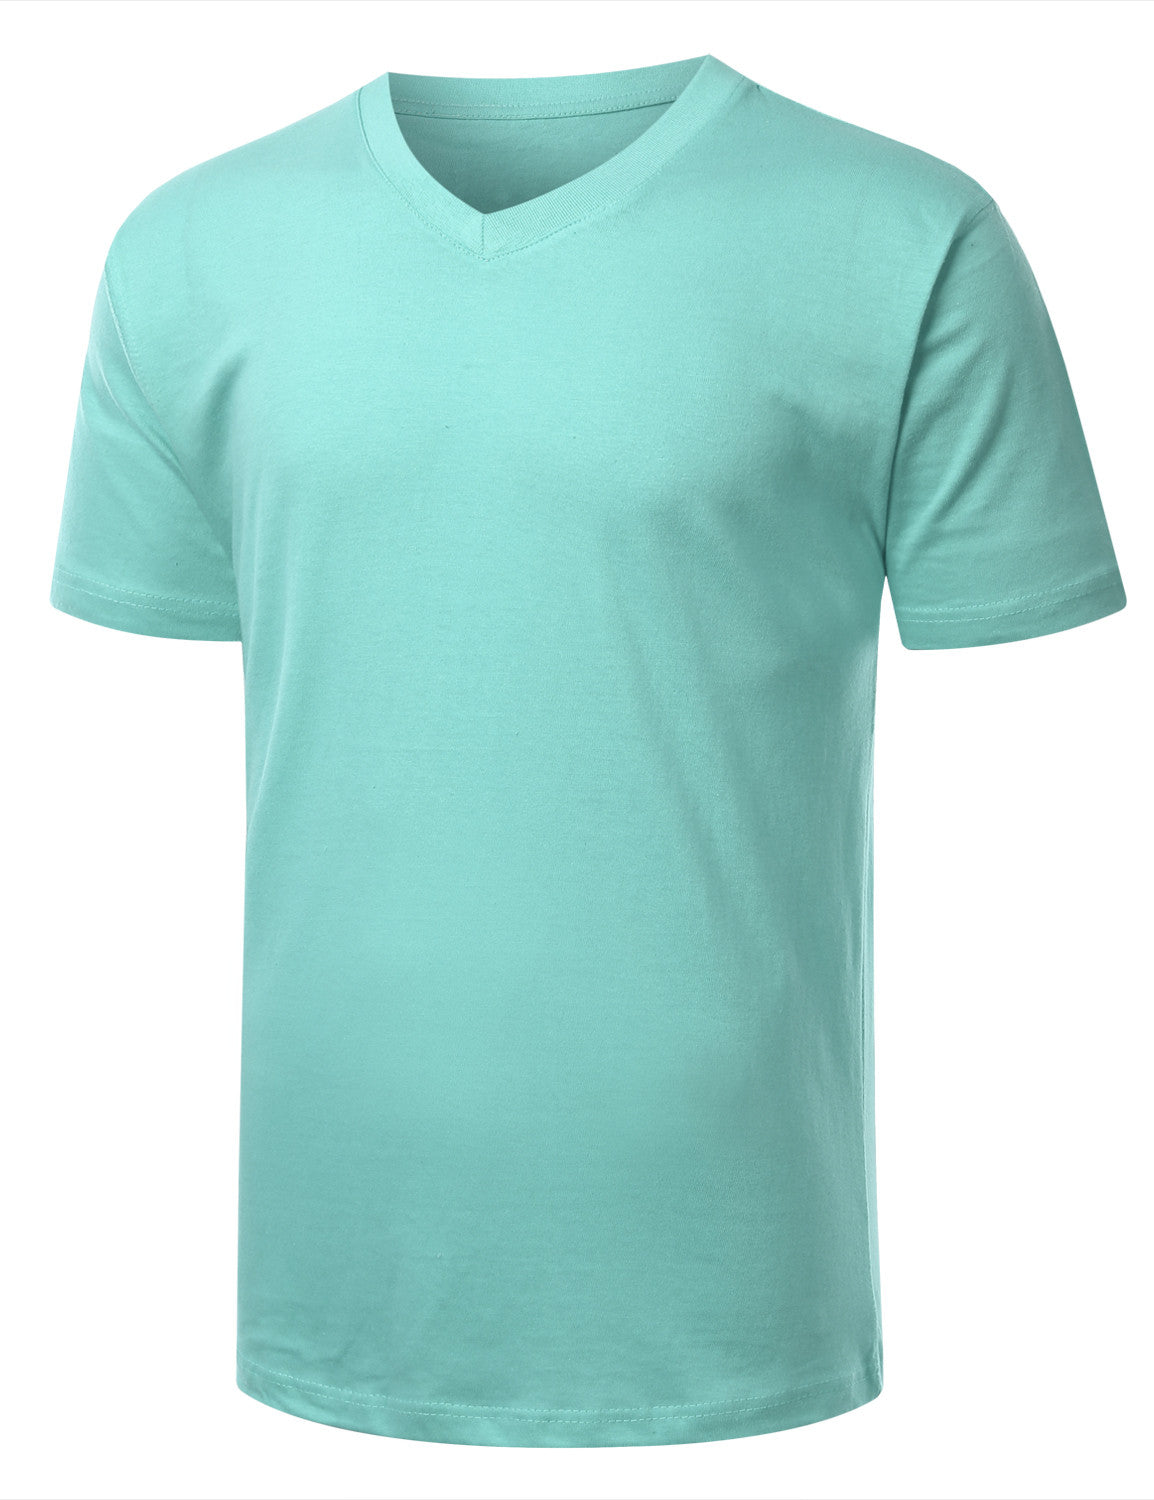 CLEARWATER Basic V-Neck T-Shirt - URBANCREWS